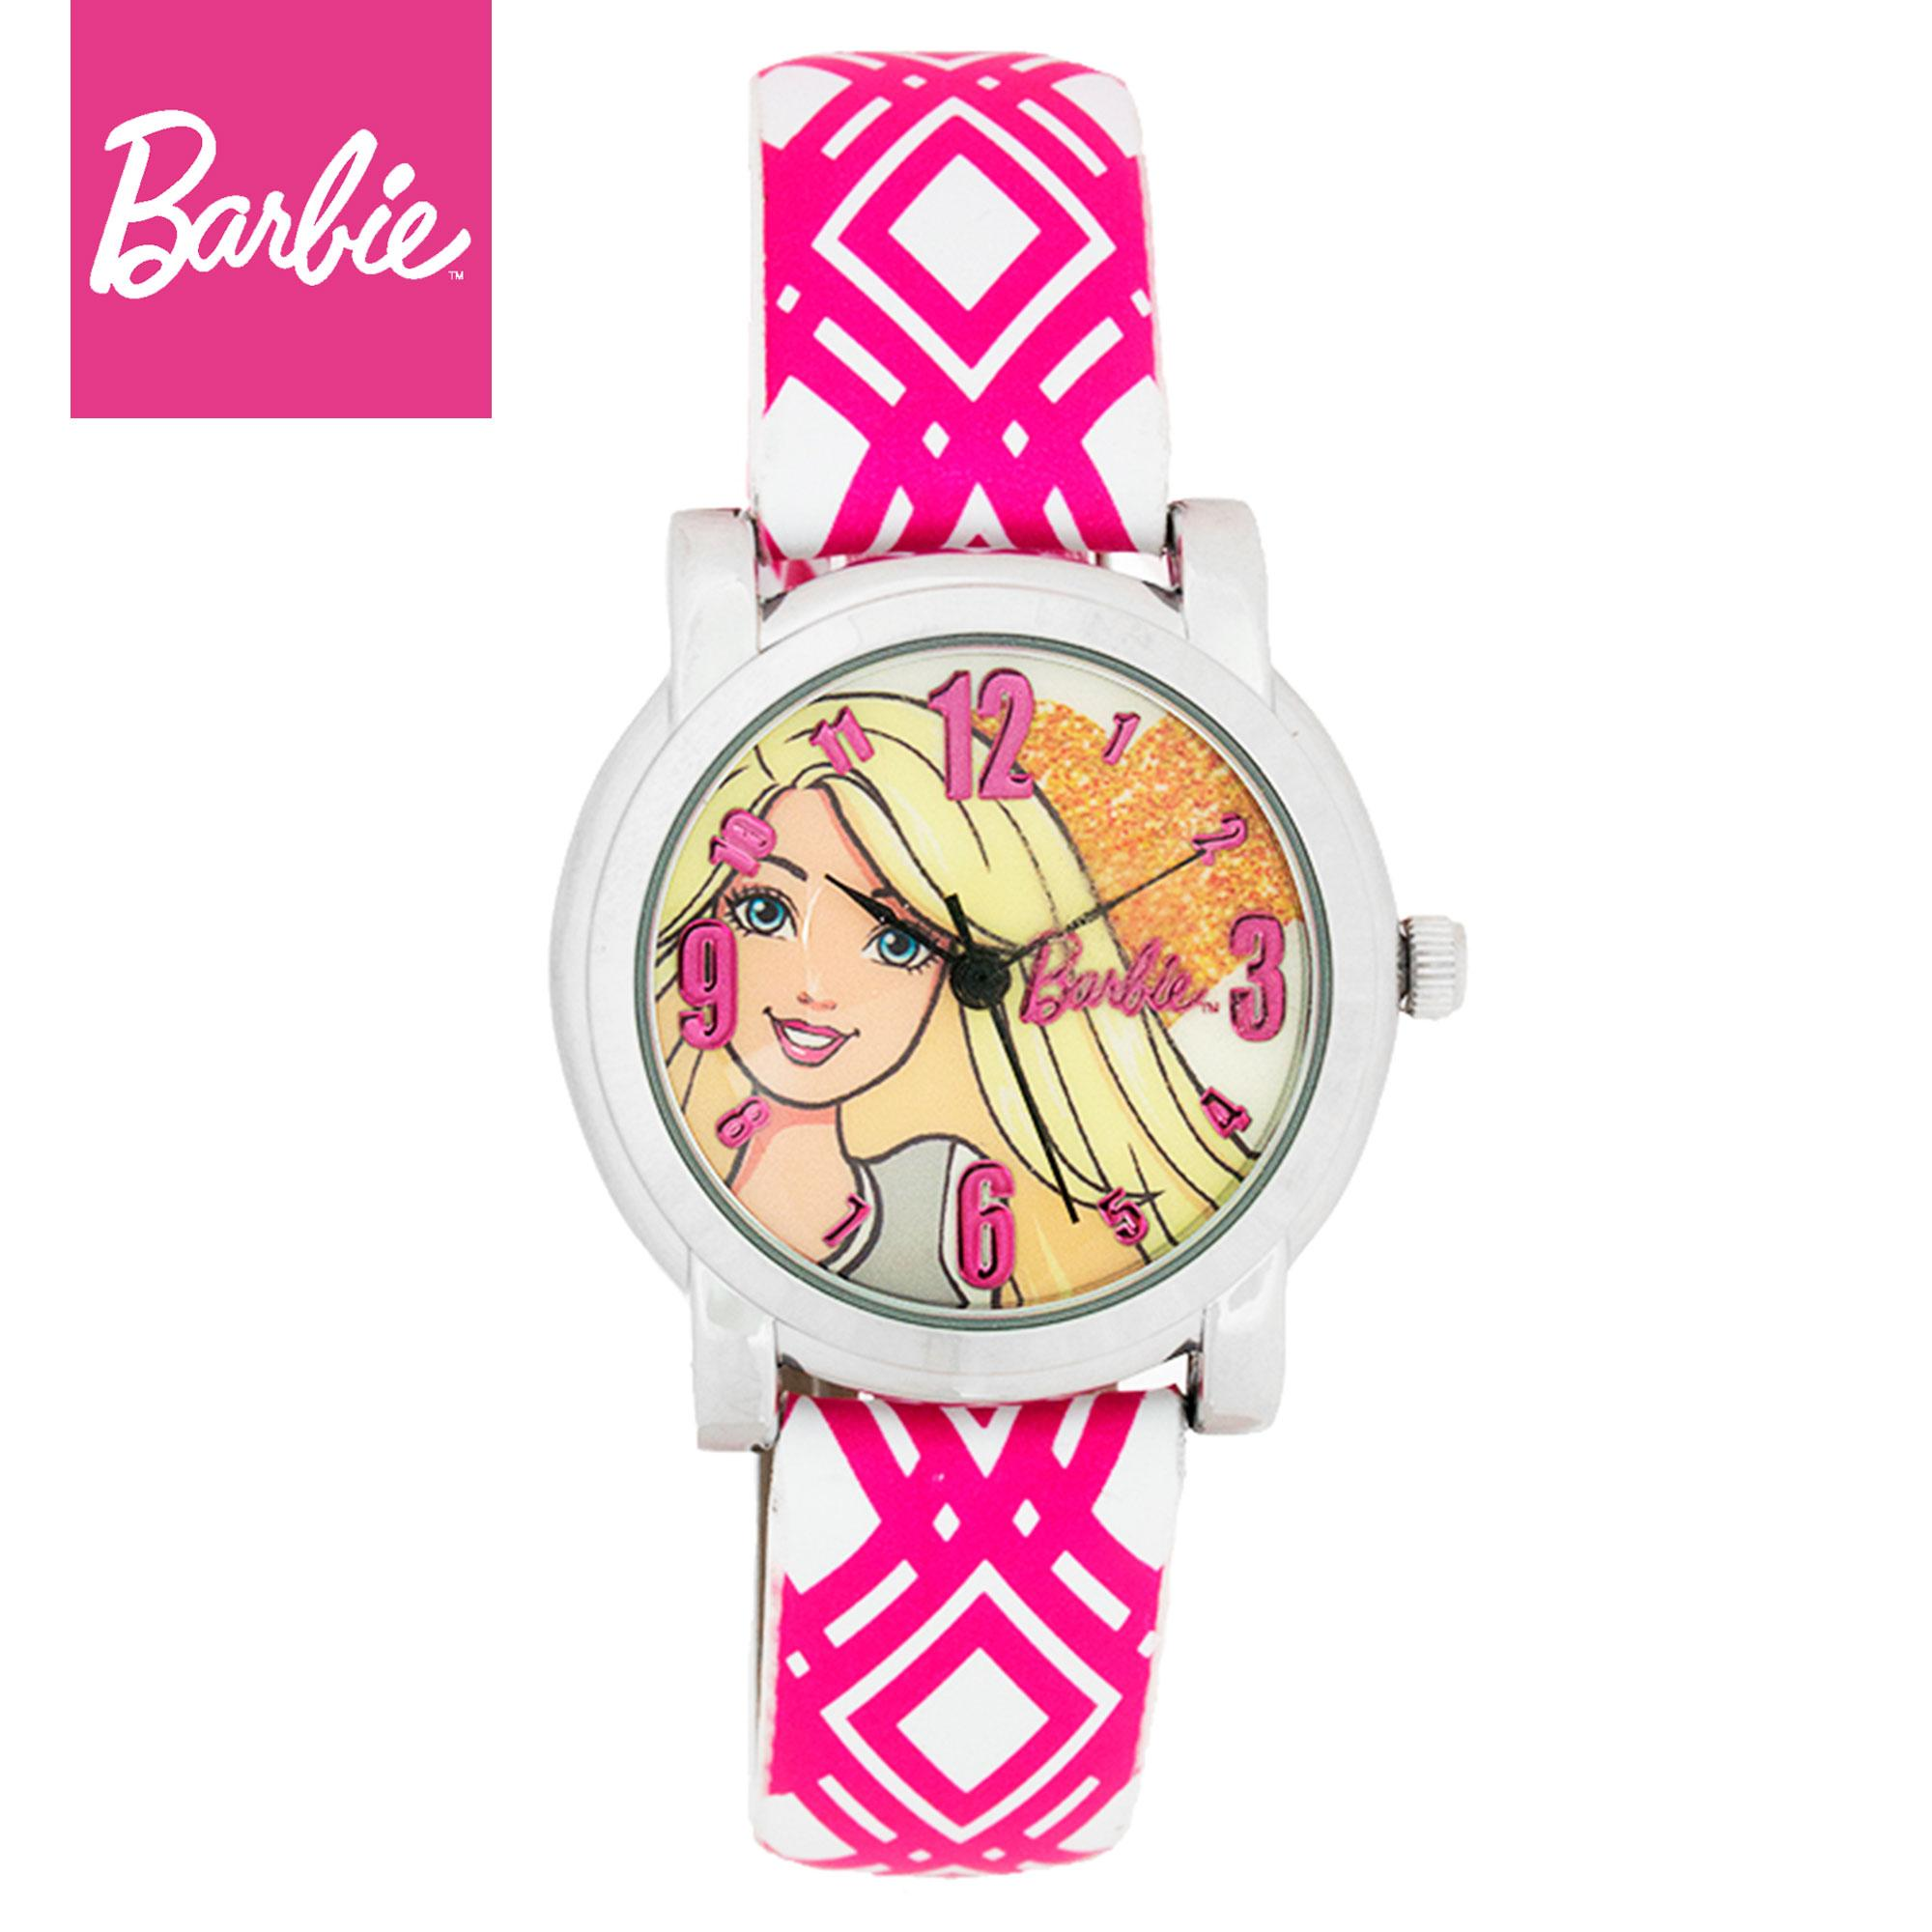 Barbie Girls Multicolor Leather Strap Watch BBOUFW16-105 (Fashion Series)